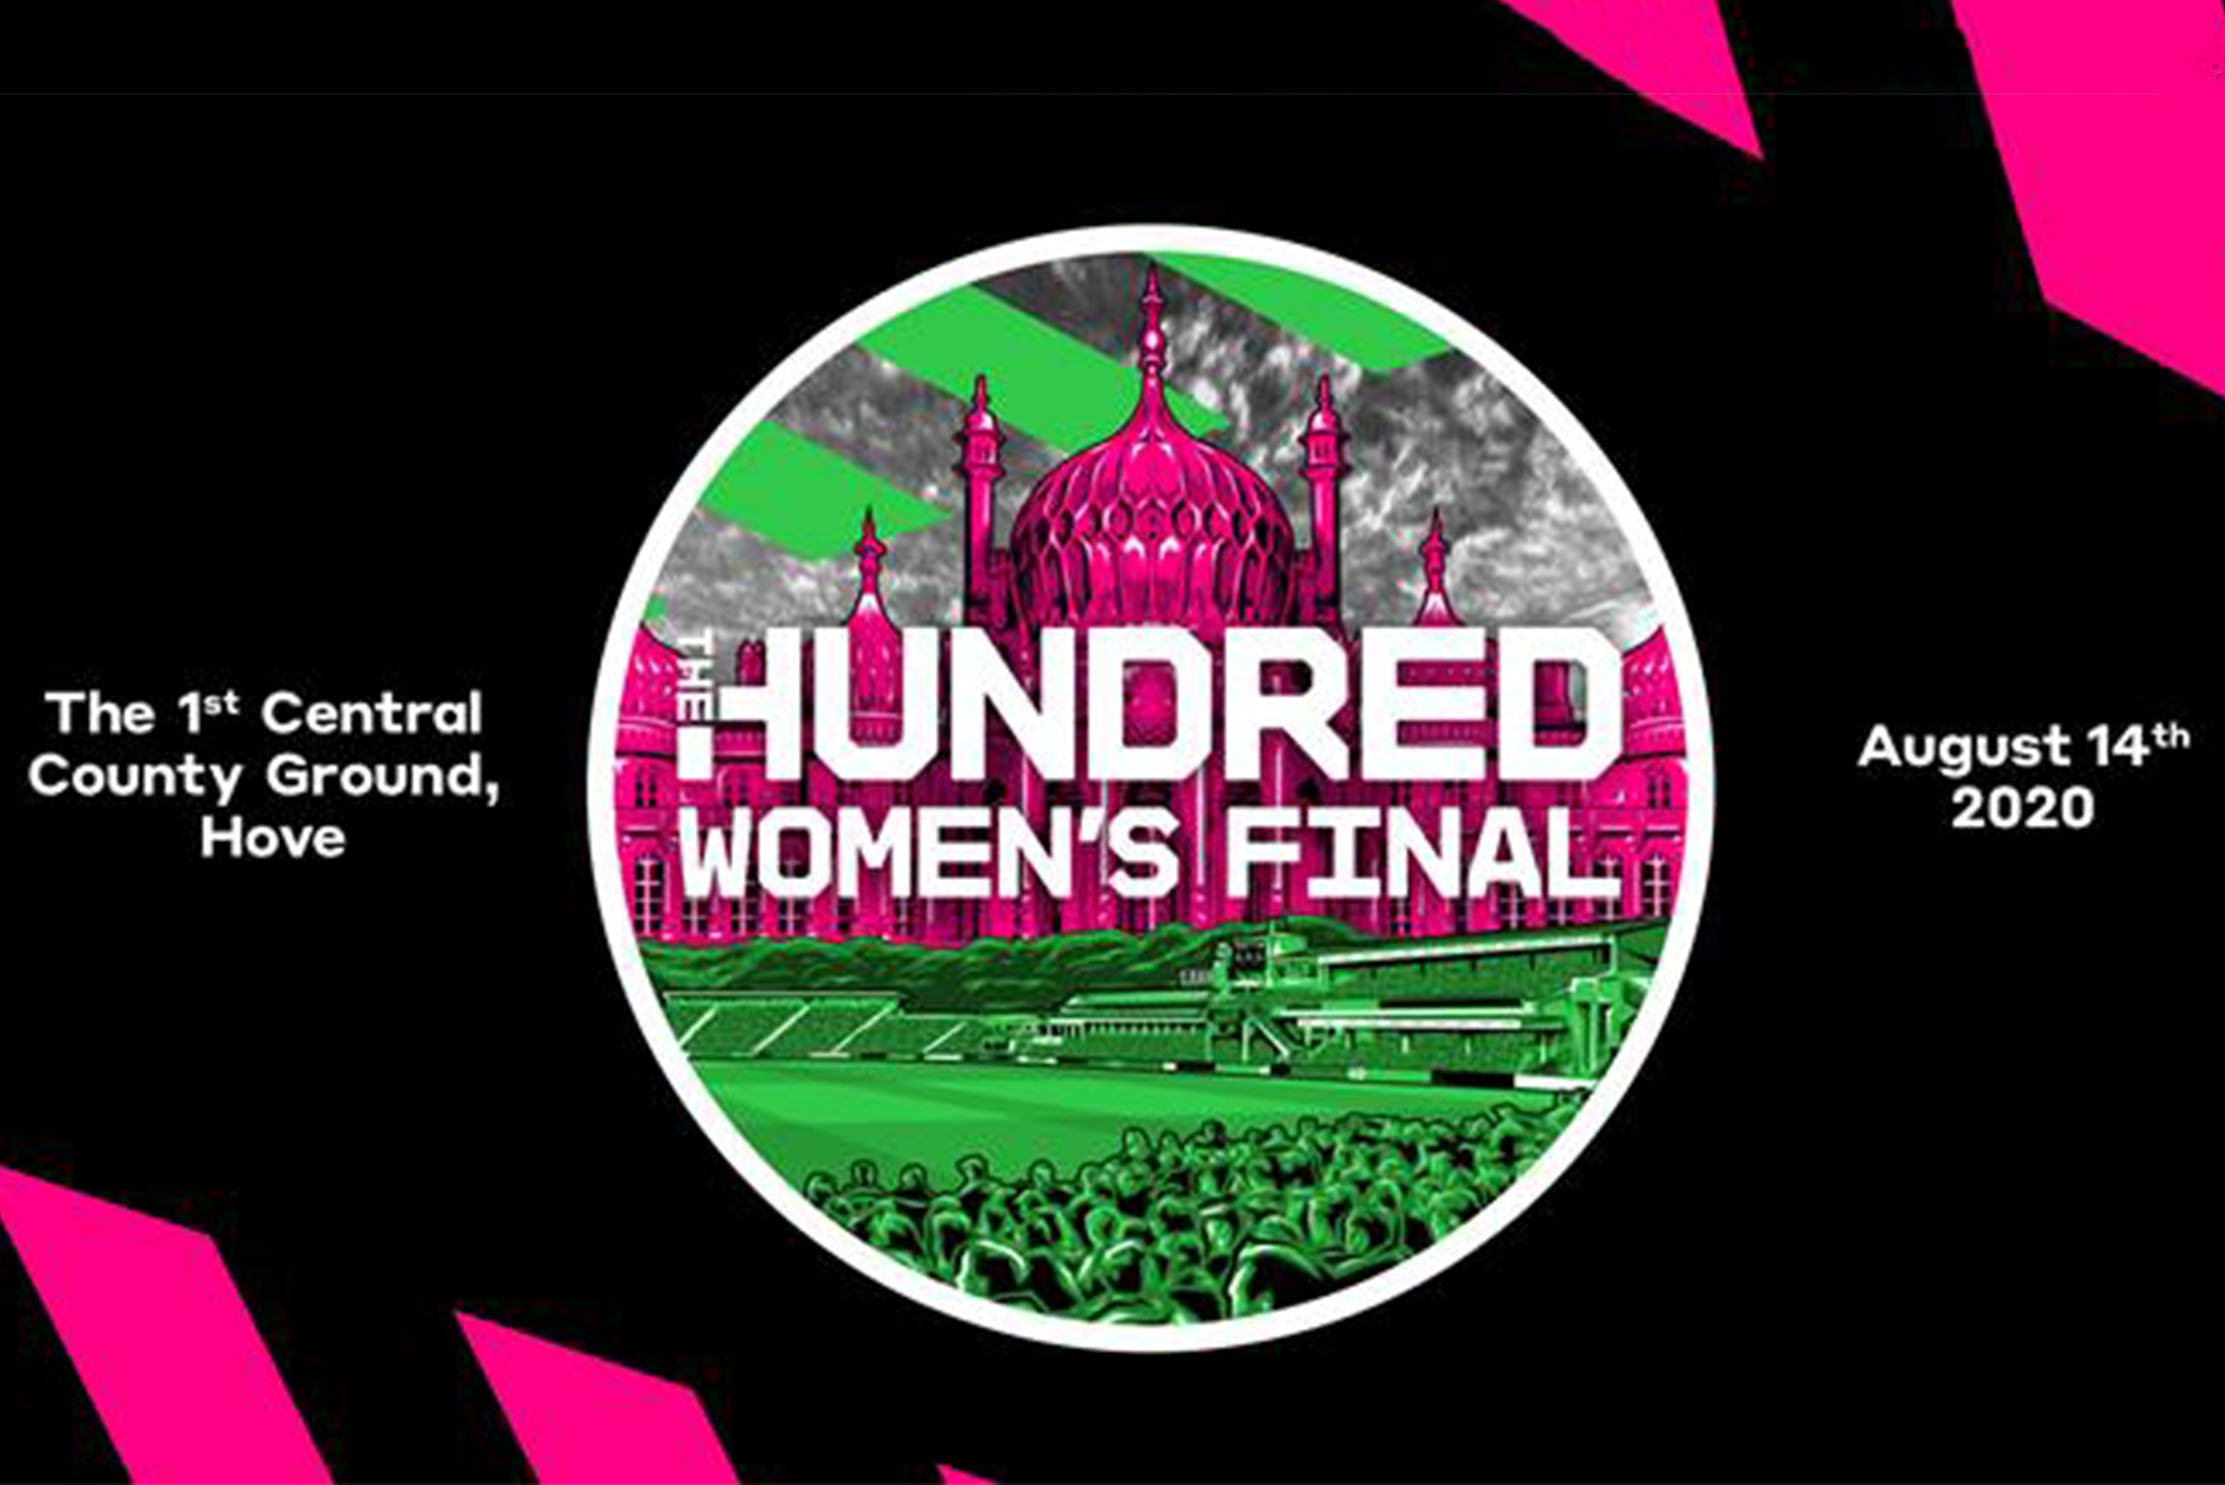 Lord's and Sussex Cricket's The 1st Central County Ground, Hove have been awarded the Finals Days in the first season of cricket's newest competition, The Hundred.